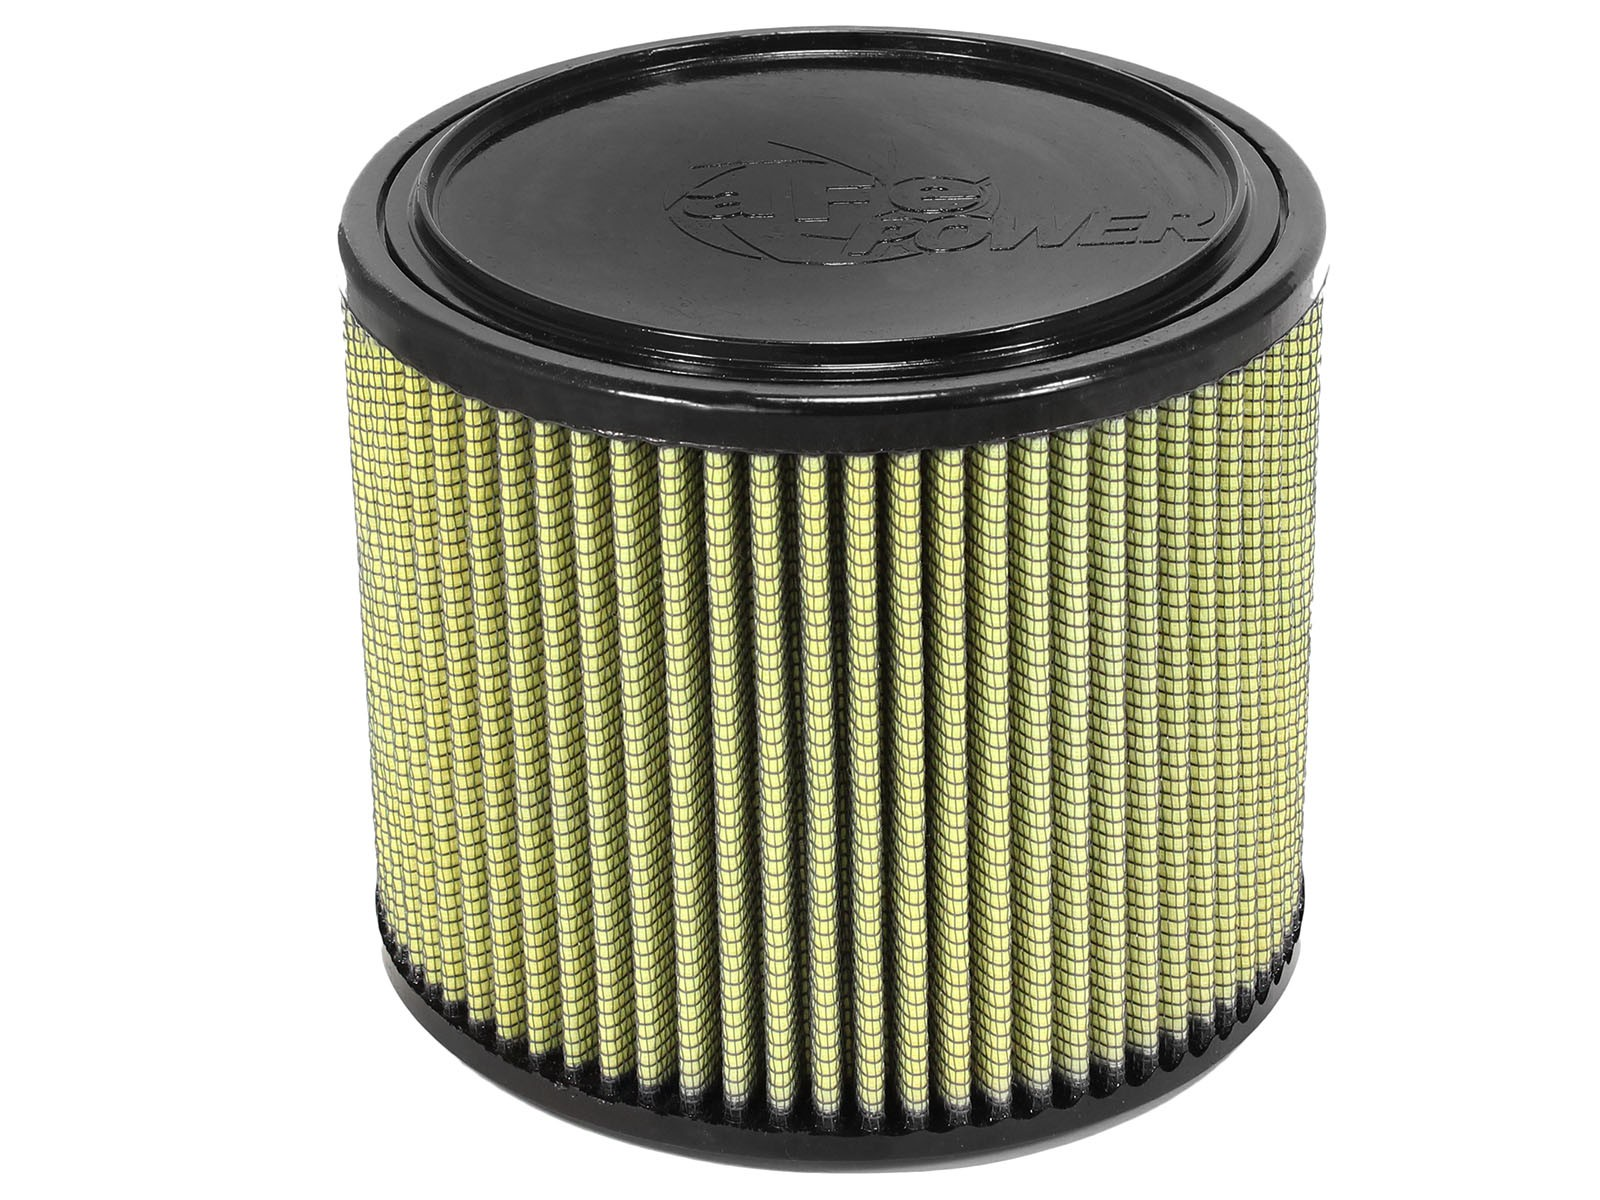 aFe POWER 87-10067 Aries Powersports Pro GUARD7 Air Filter